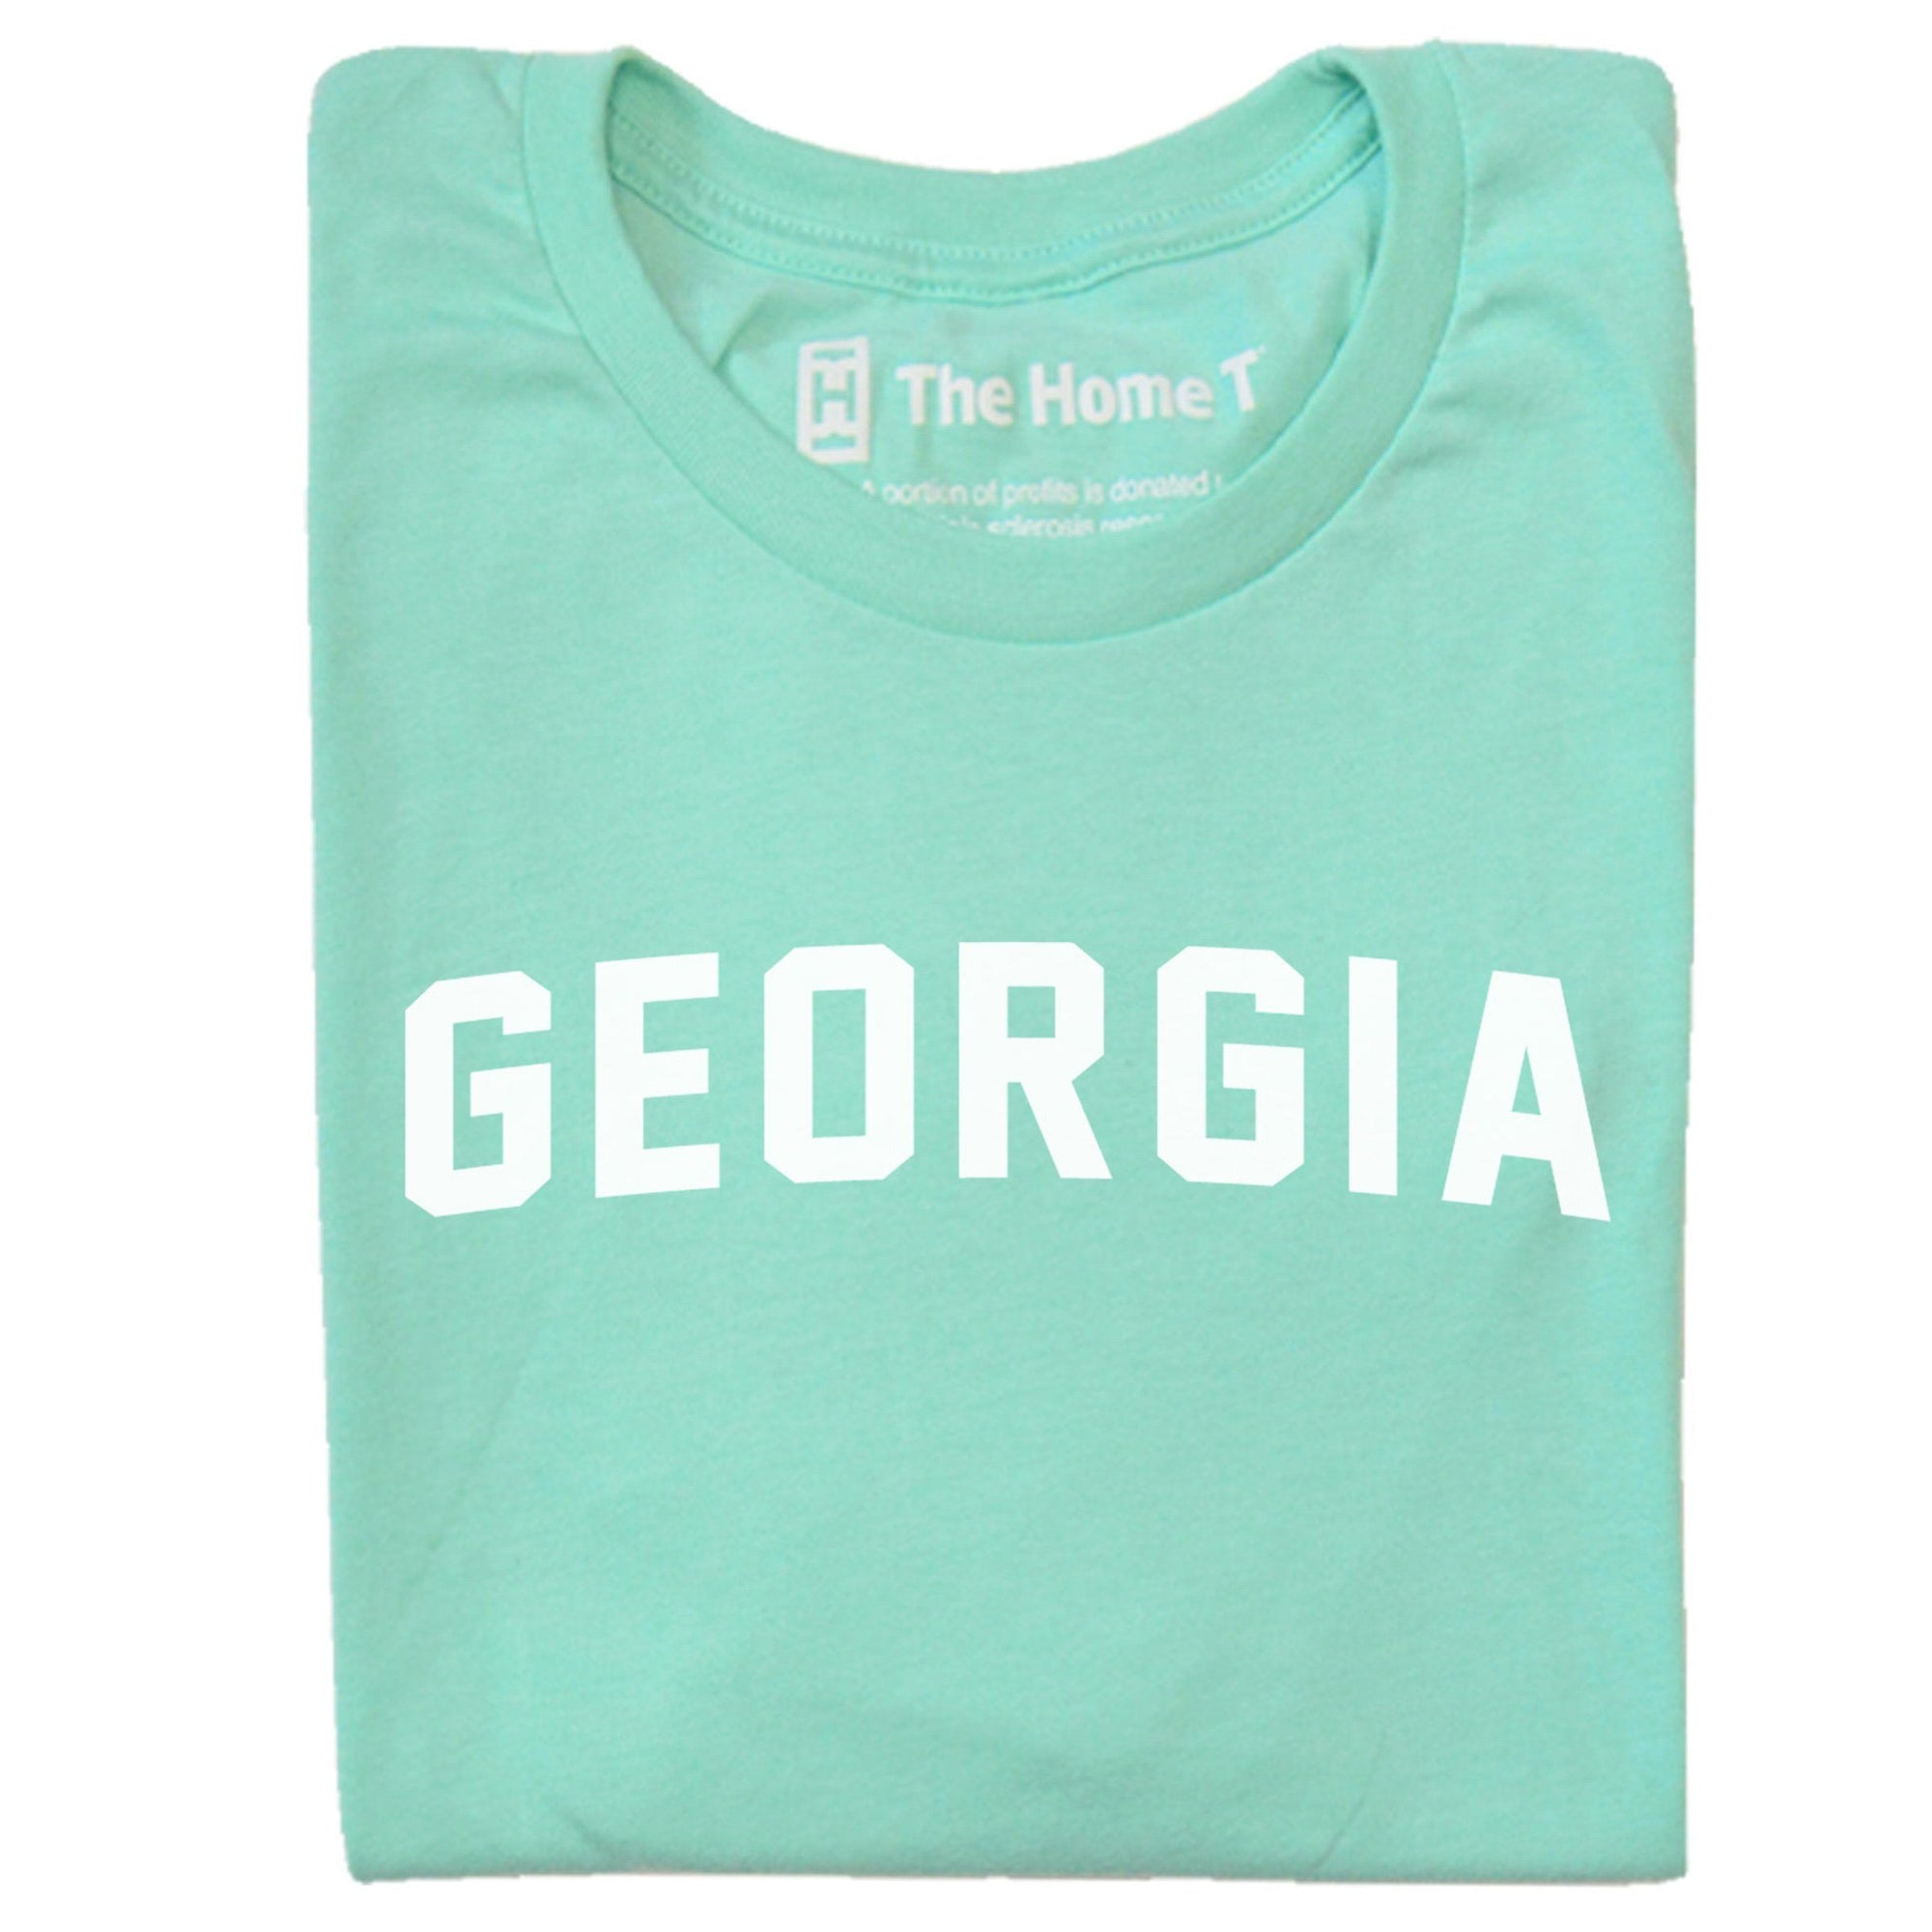 Georgia Arched The Home T XS Mint